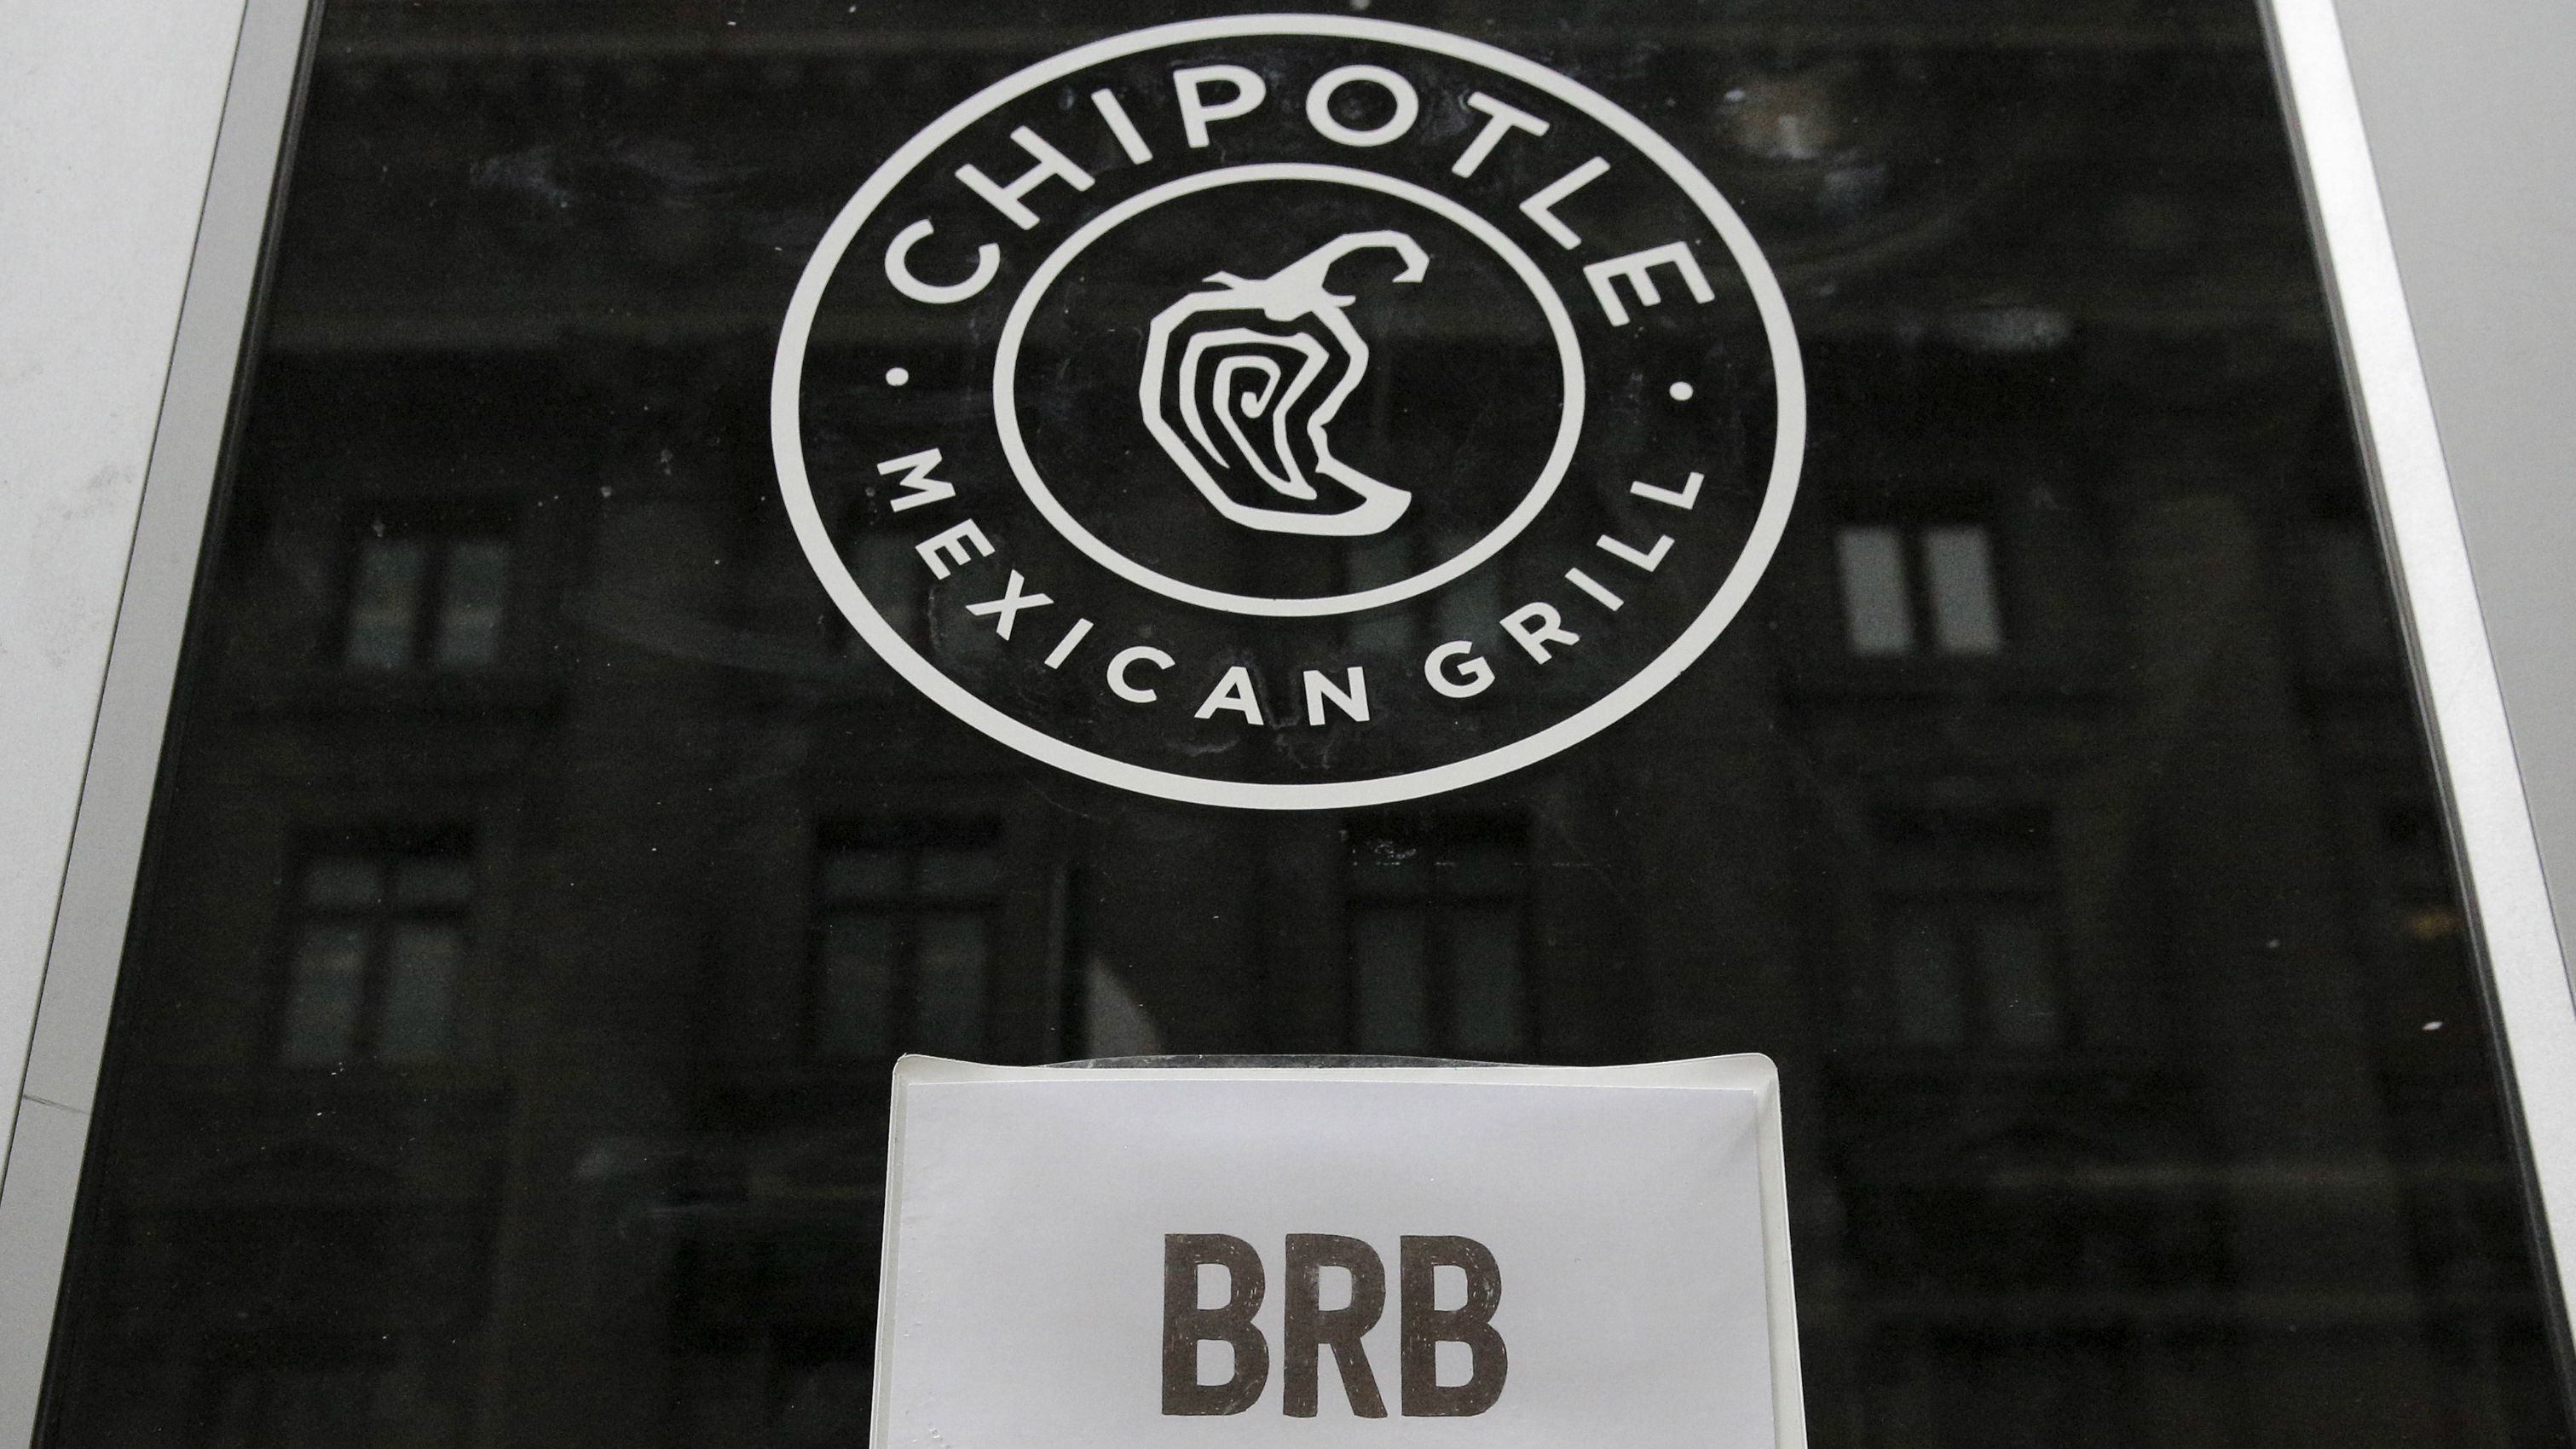 Chipotle Mexican Grill Cmg Stock Took A Nosedive Amid Norovirus